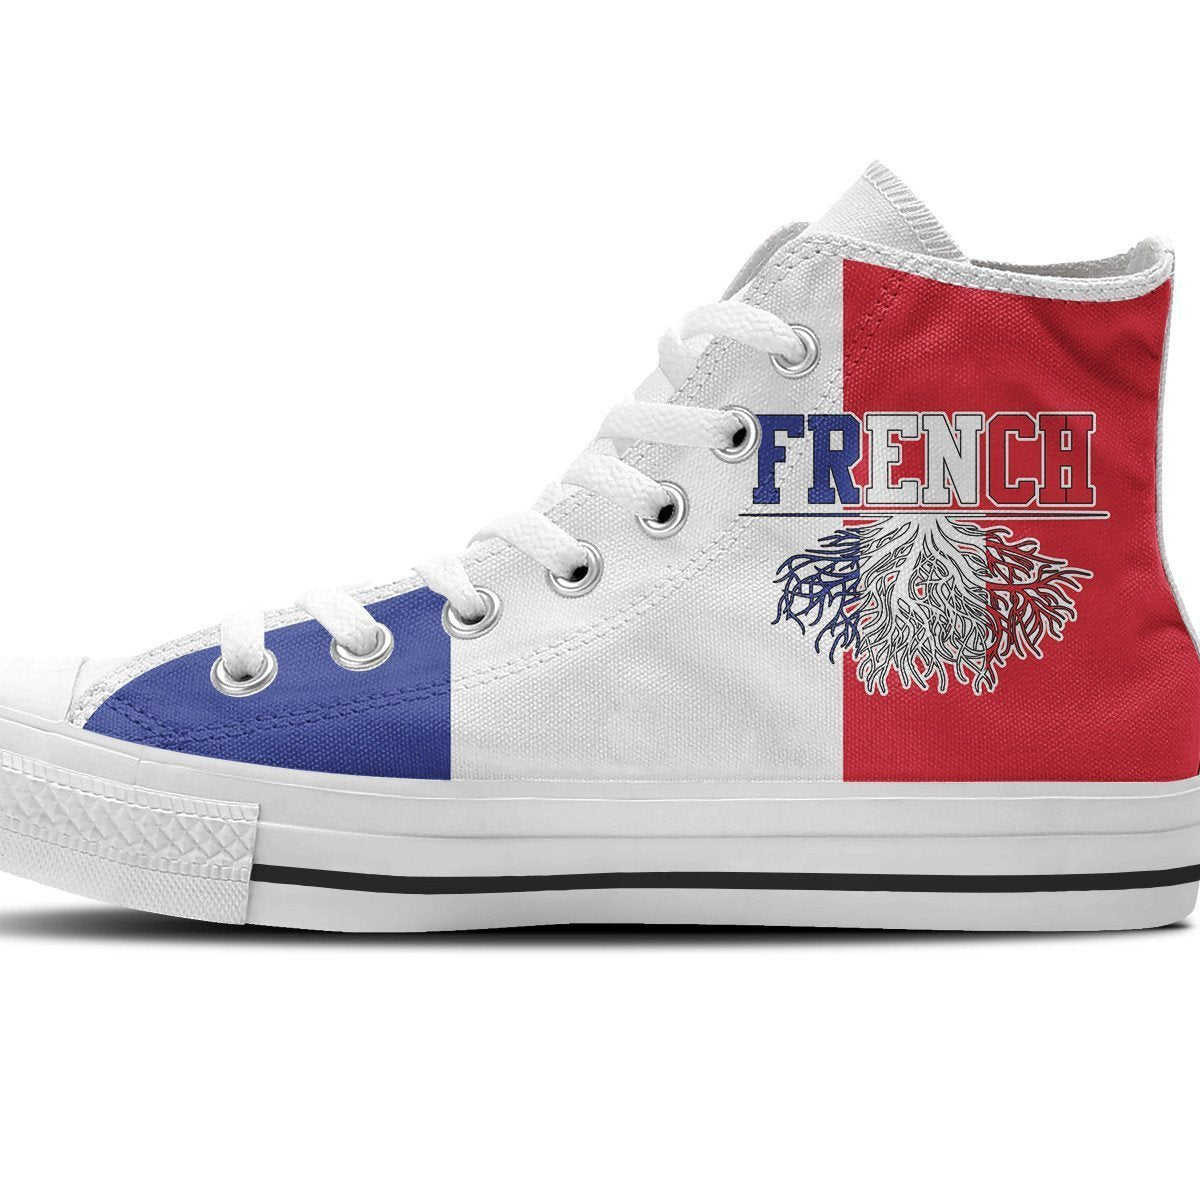 french roots new mens high top sneakers high top